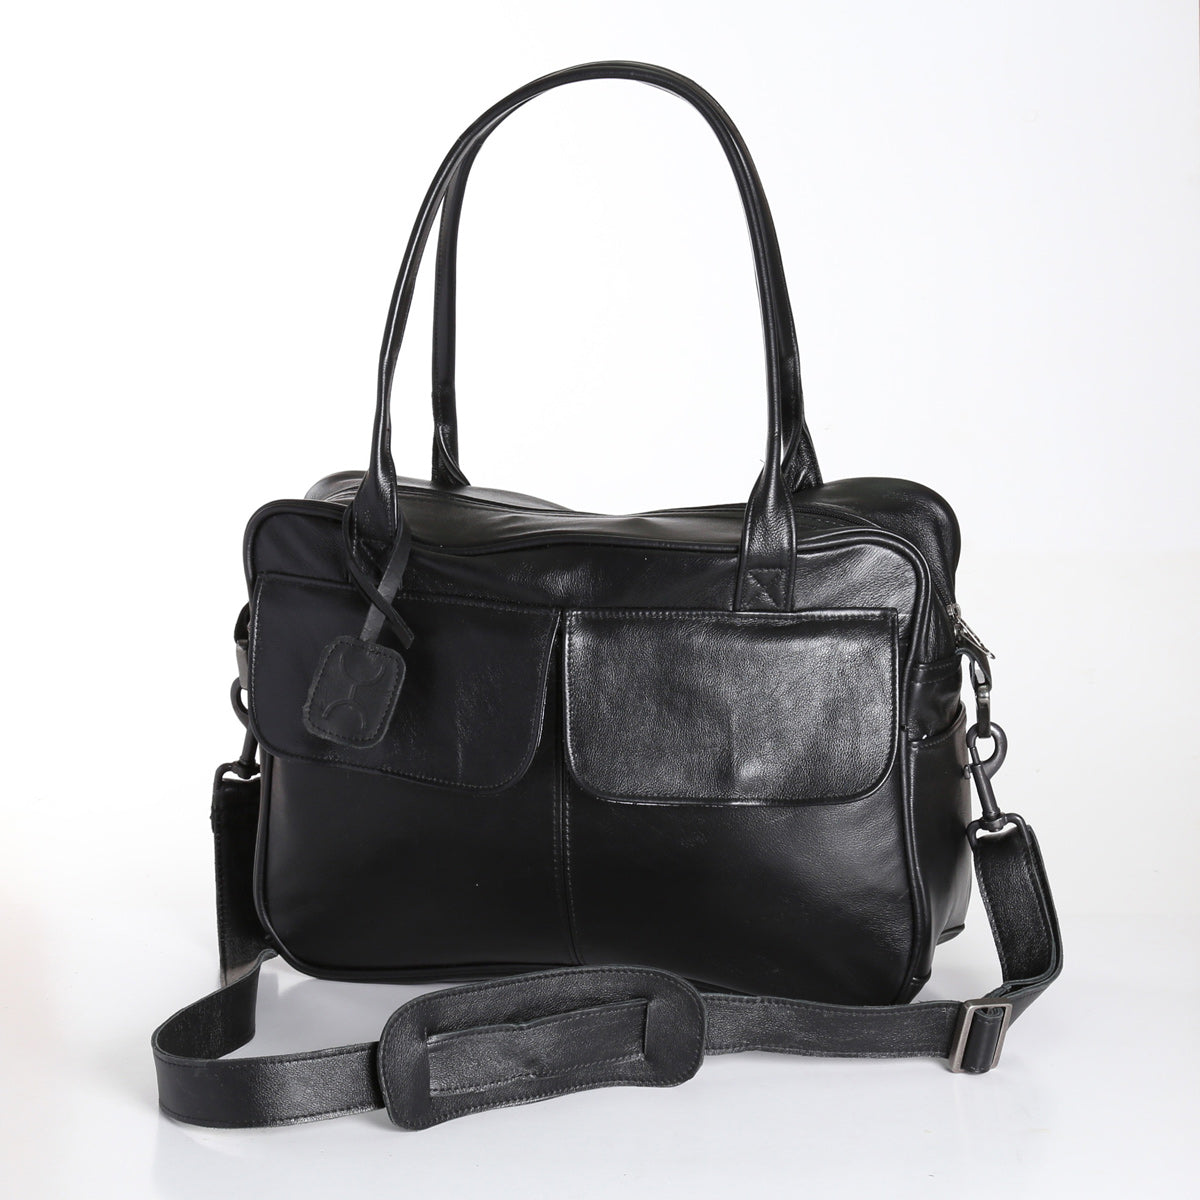 Thandana Briefcase - Black - Zufrique Boutique